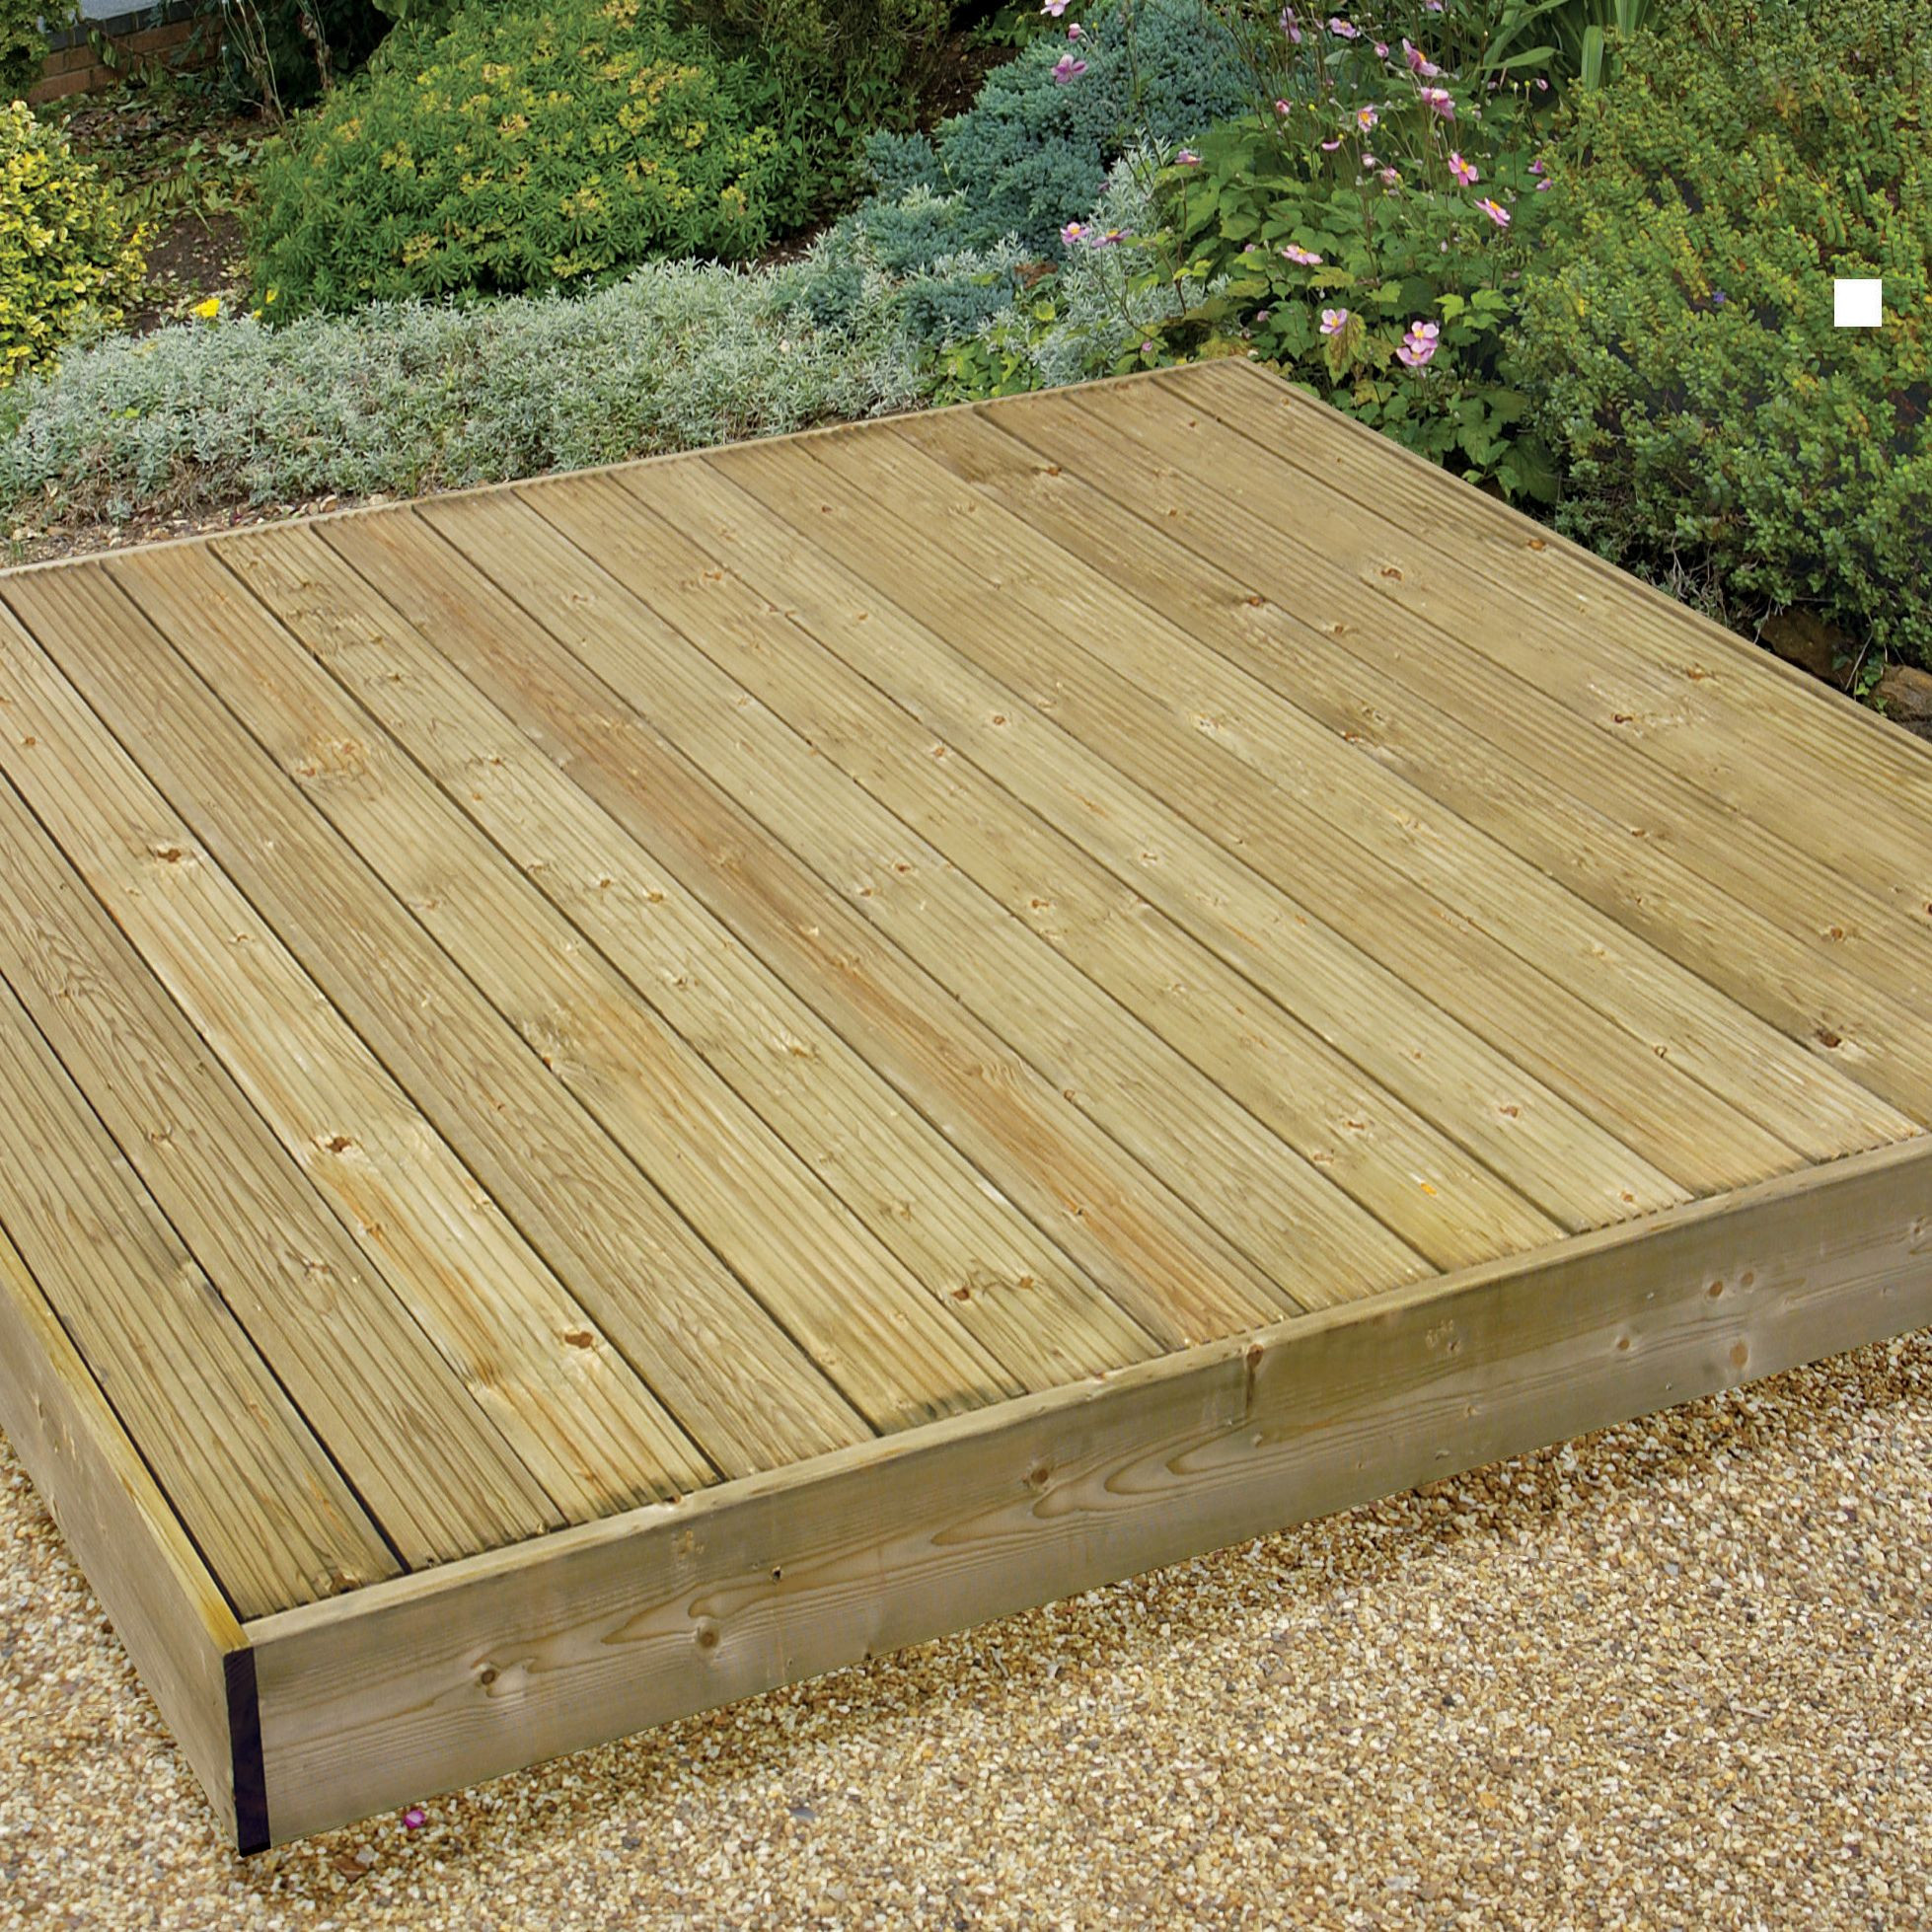 Best ideas about DIY Deck Kits . Save or Pin Deck Kits Softwood Deck Kit Departments Now.